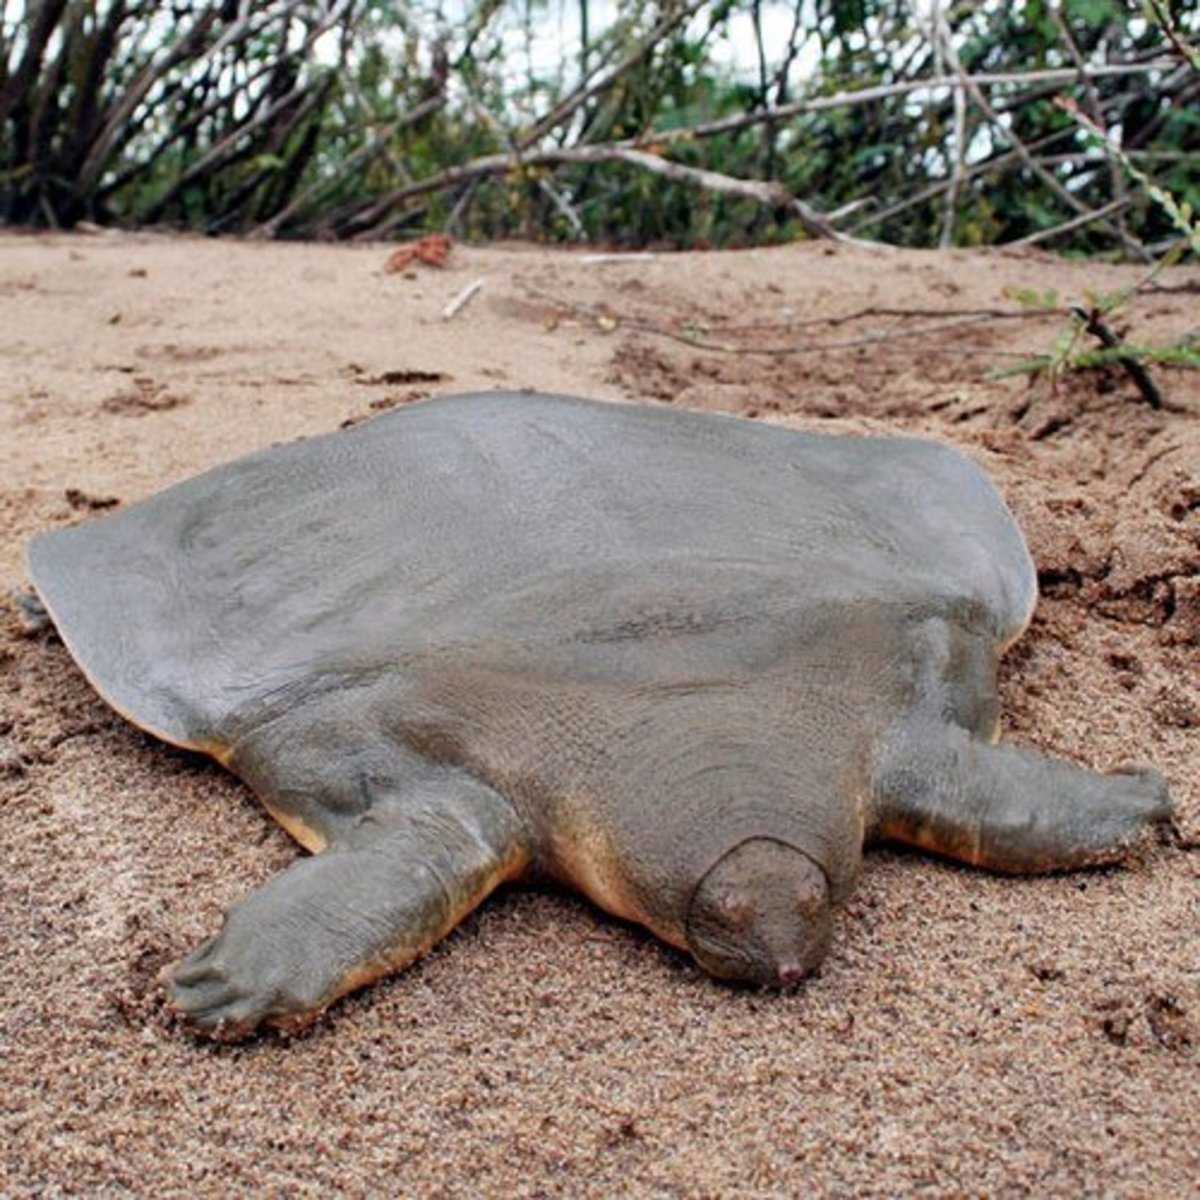 Frog-faced soft shell turtle (scientific name: Pelochelys cantorii)